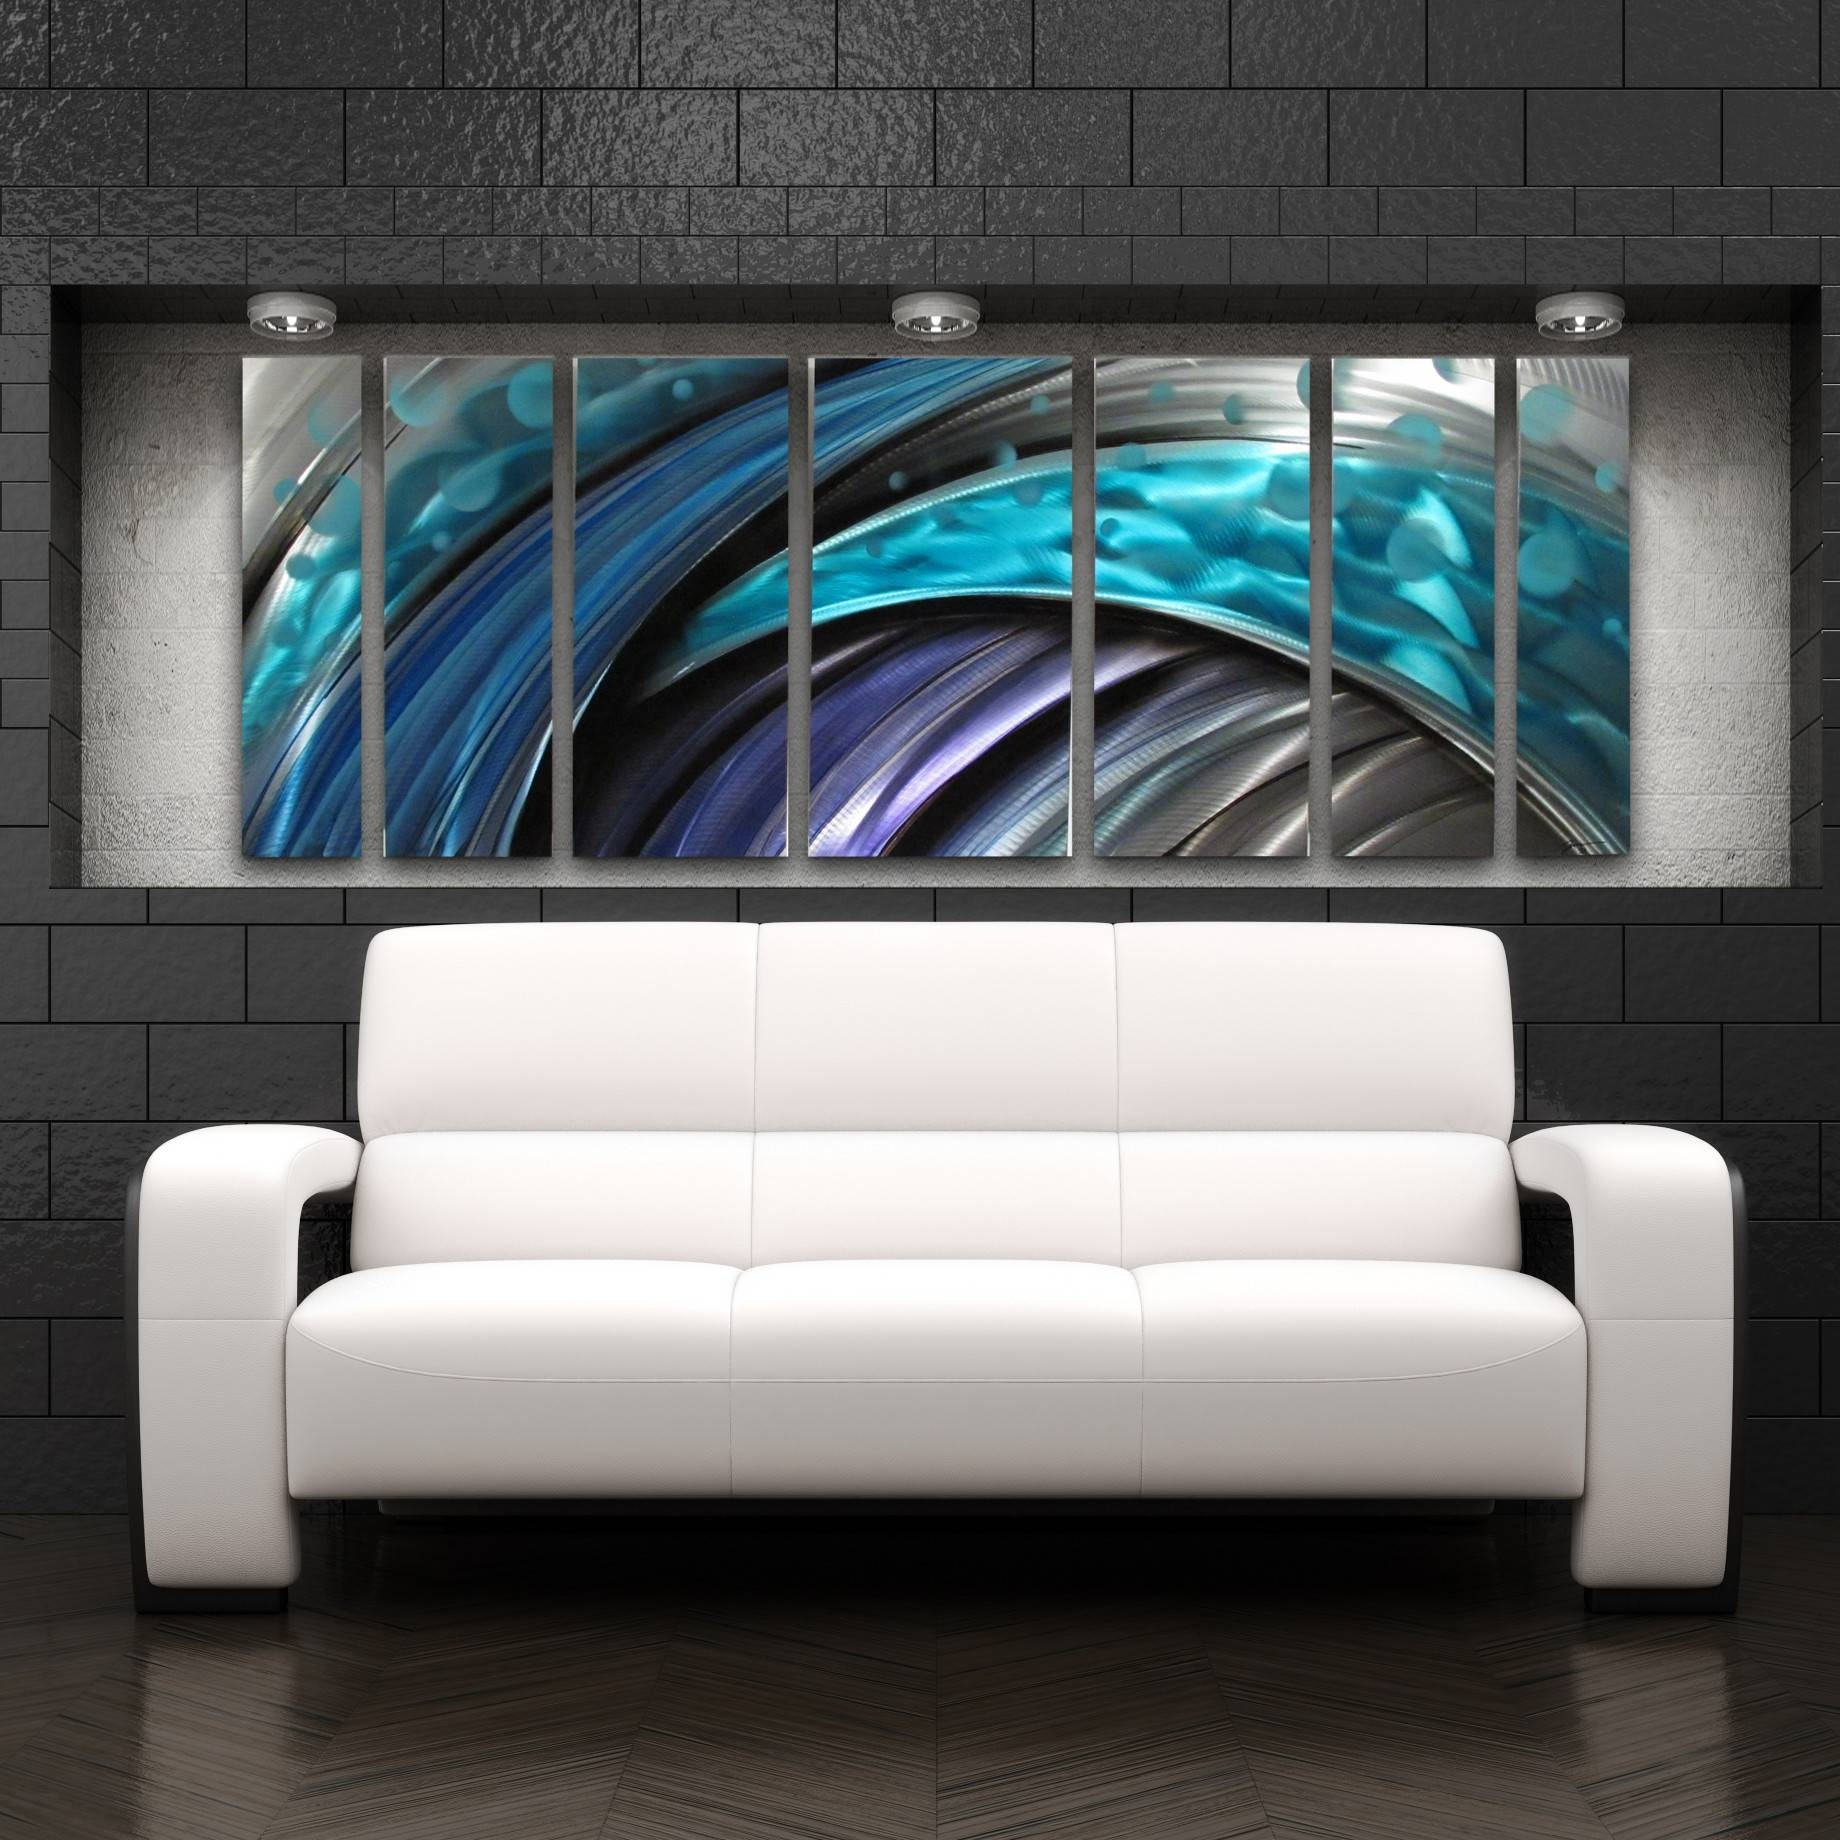 Unique Modern Wall Art And Decor Inarace Net Home Marvelous Design With Regard To Most Popular Unique Modern Wall Art (Gallery 1 of 20)